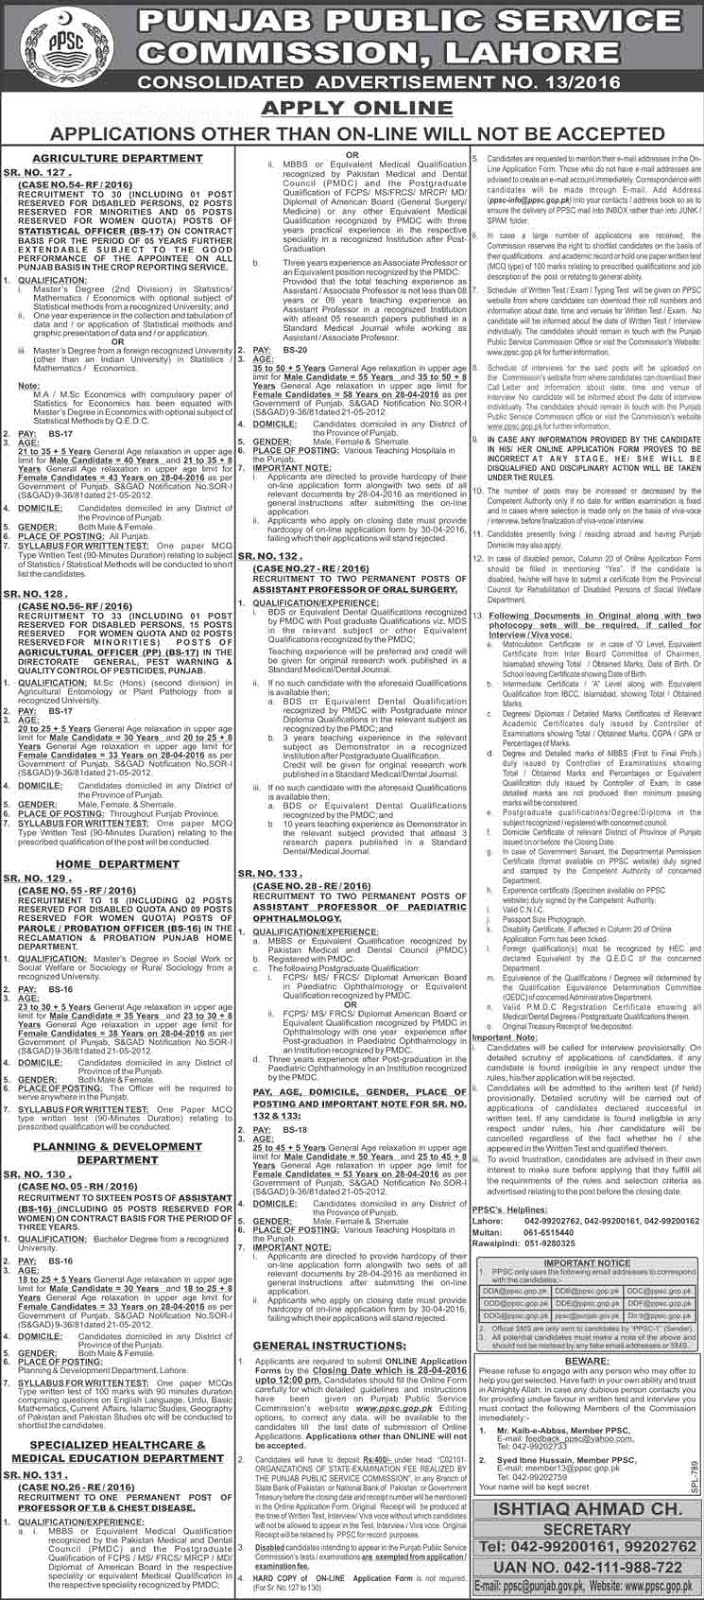 PPSC Jobs 2016 in Lahore Punjab Pakistan | PPSC Jobs .